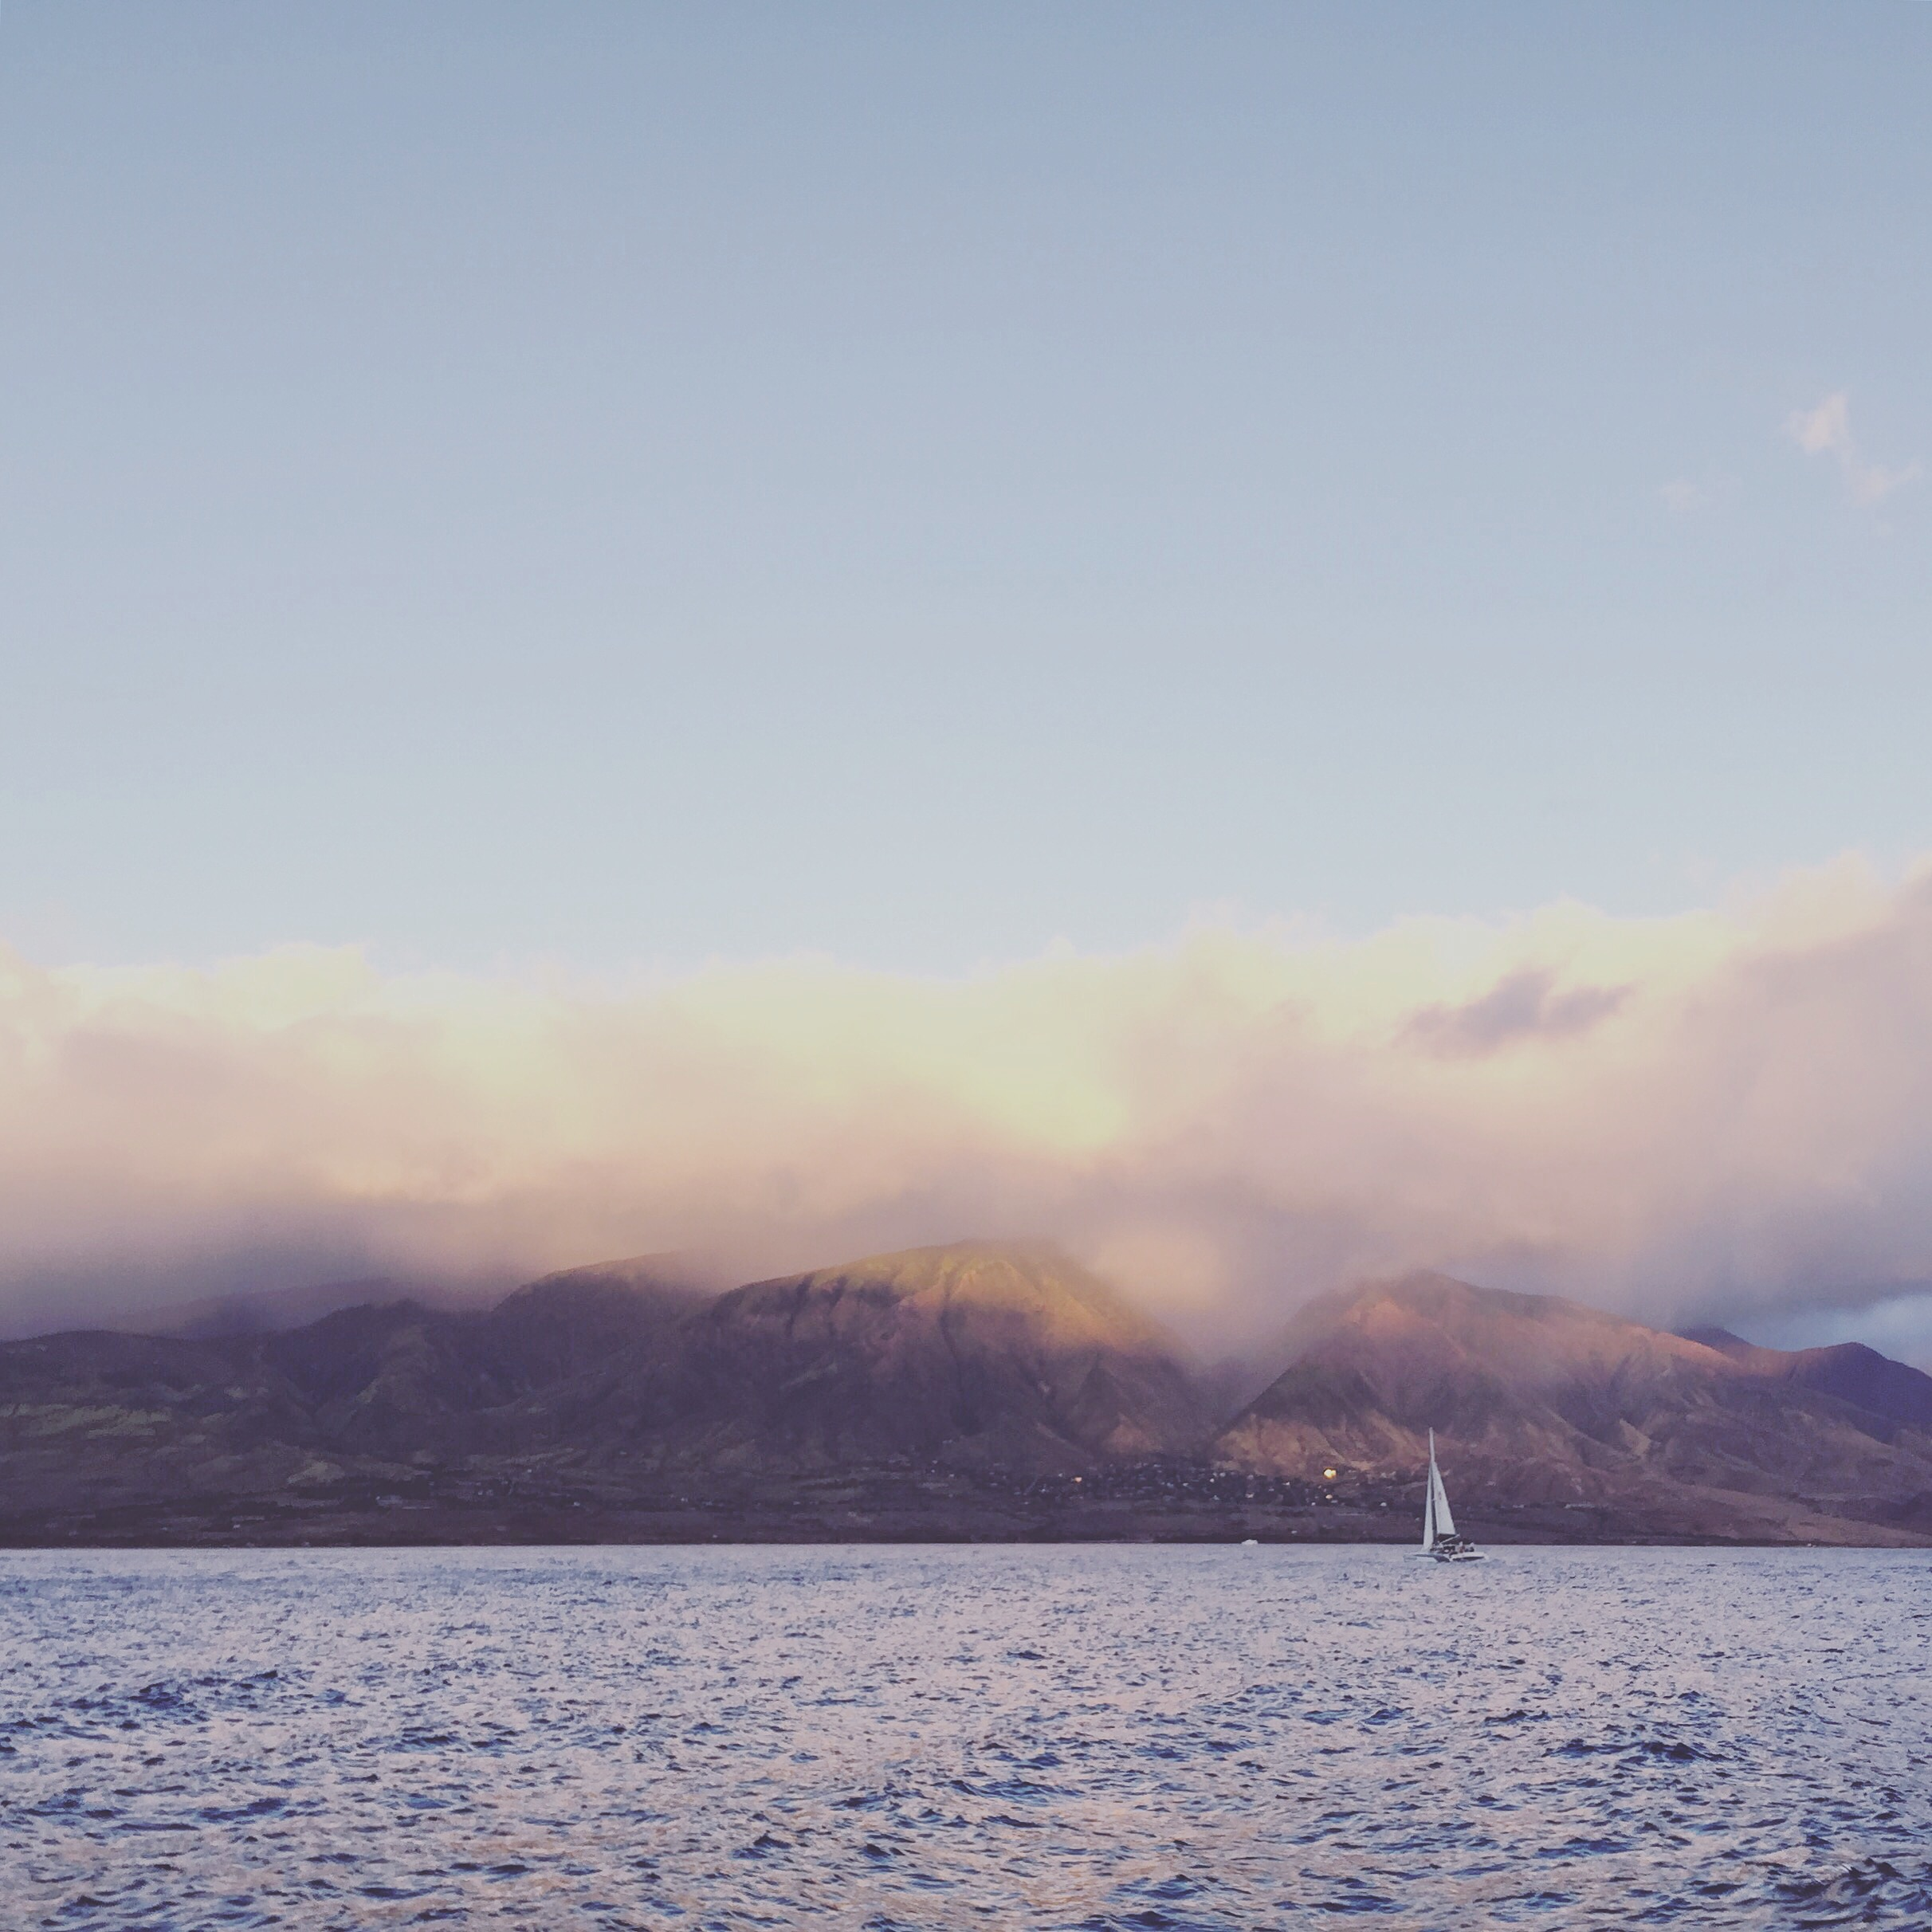 Sailing back towards Maui after a day out snorkeling